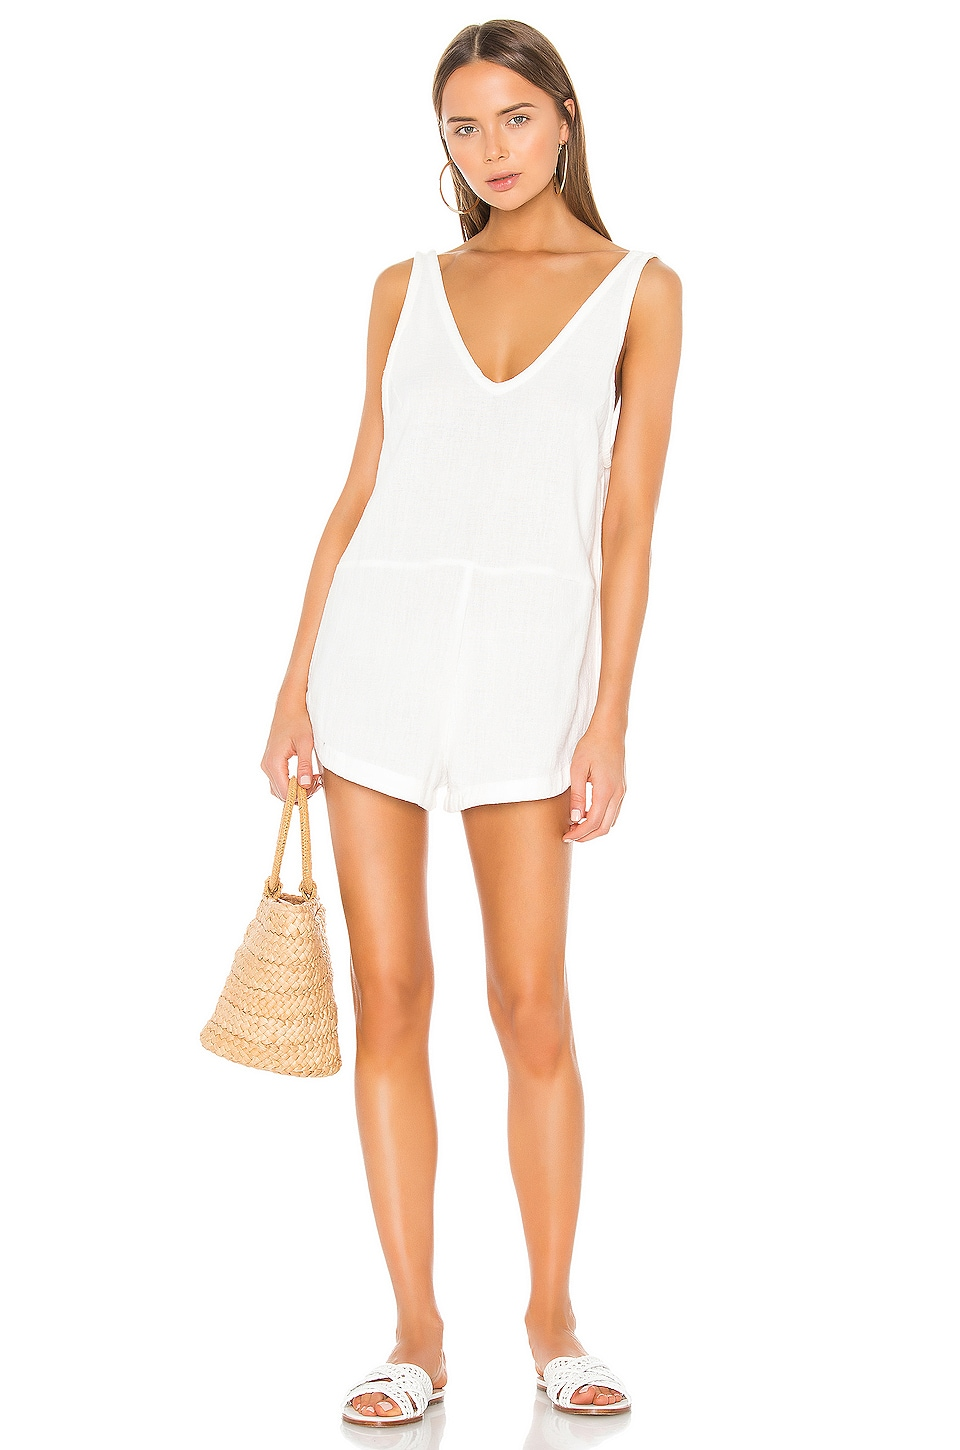 MIKOH Ibara Romper in Bone